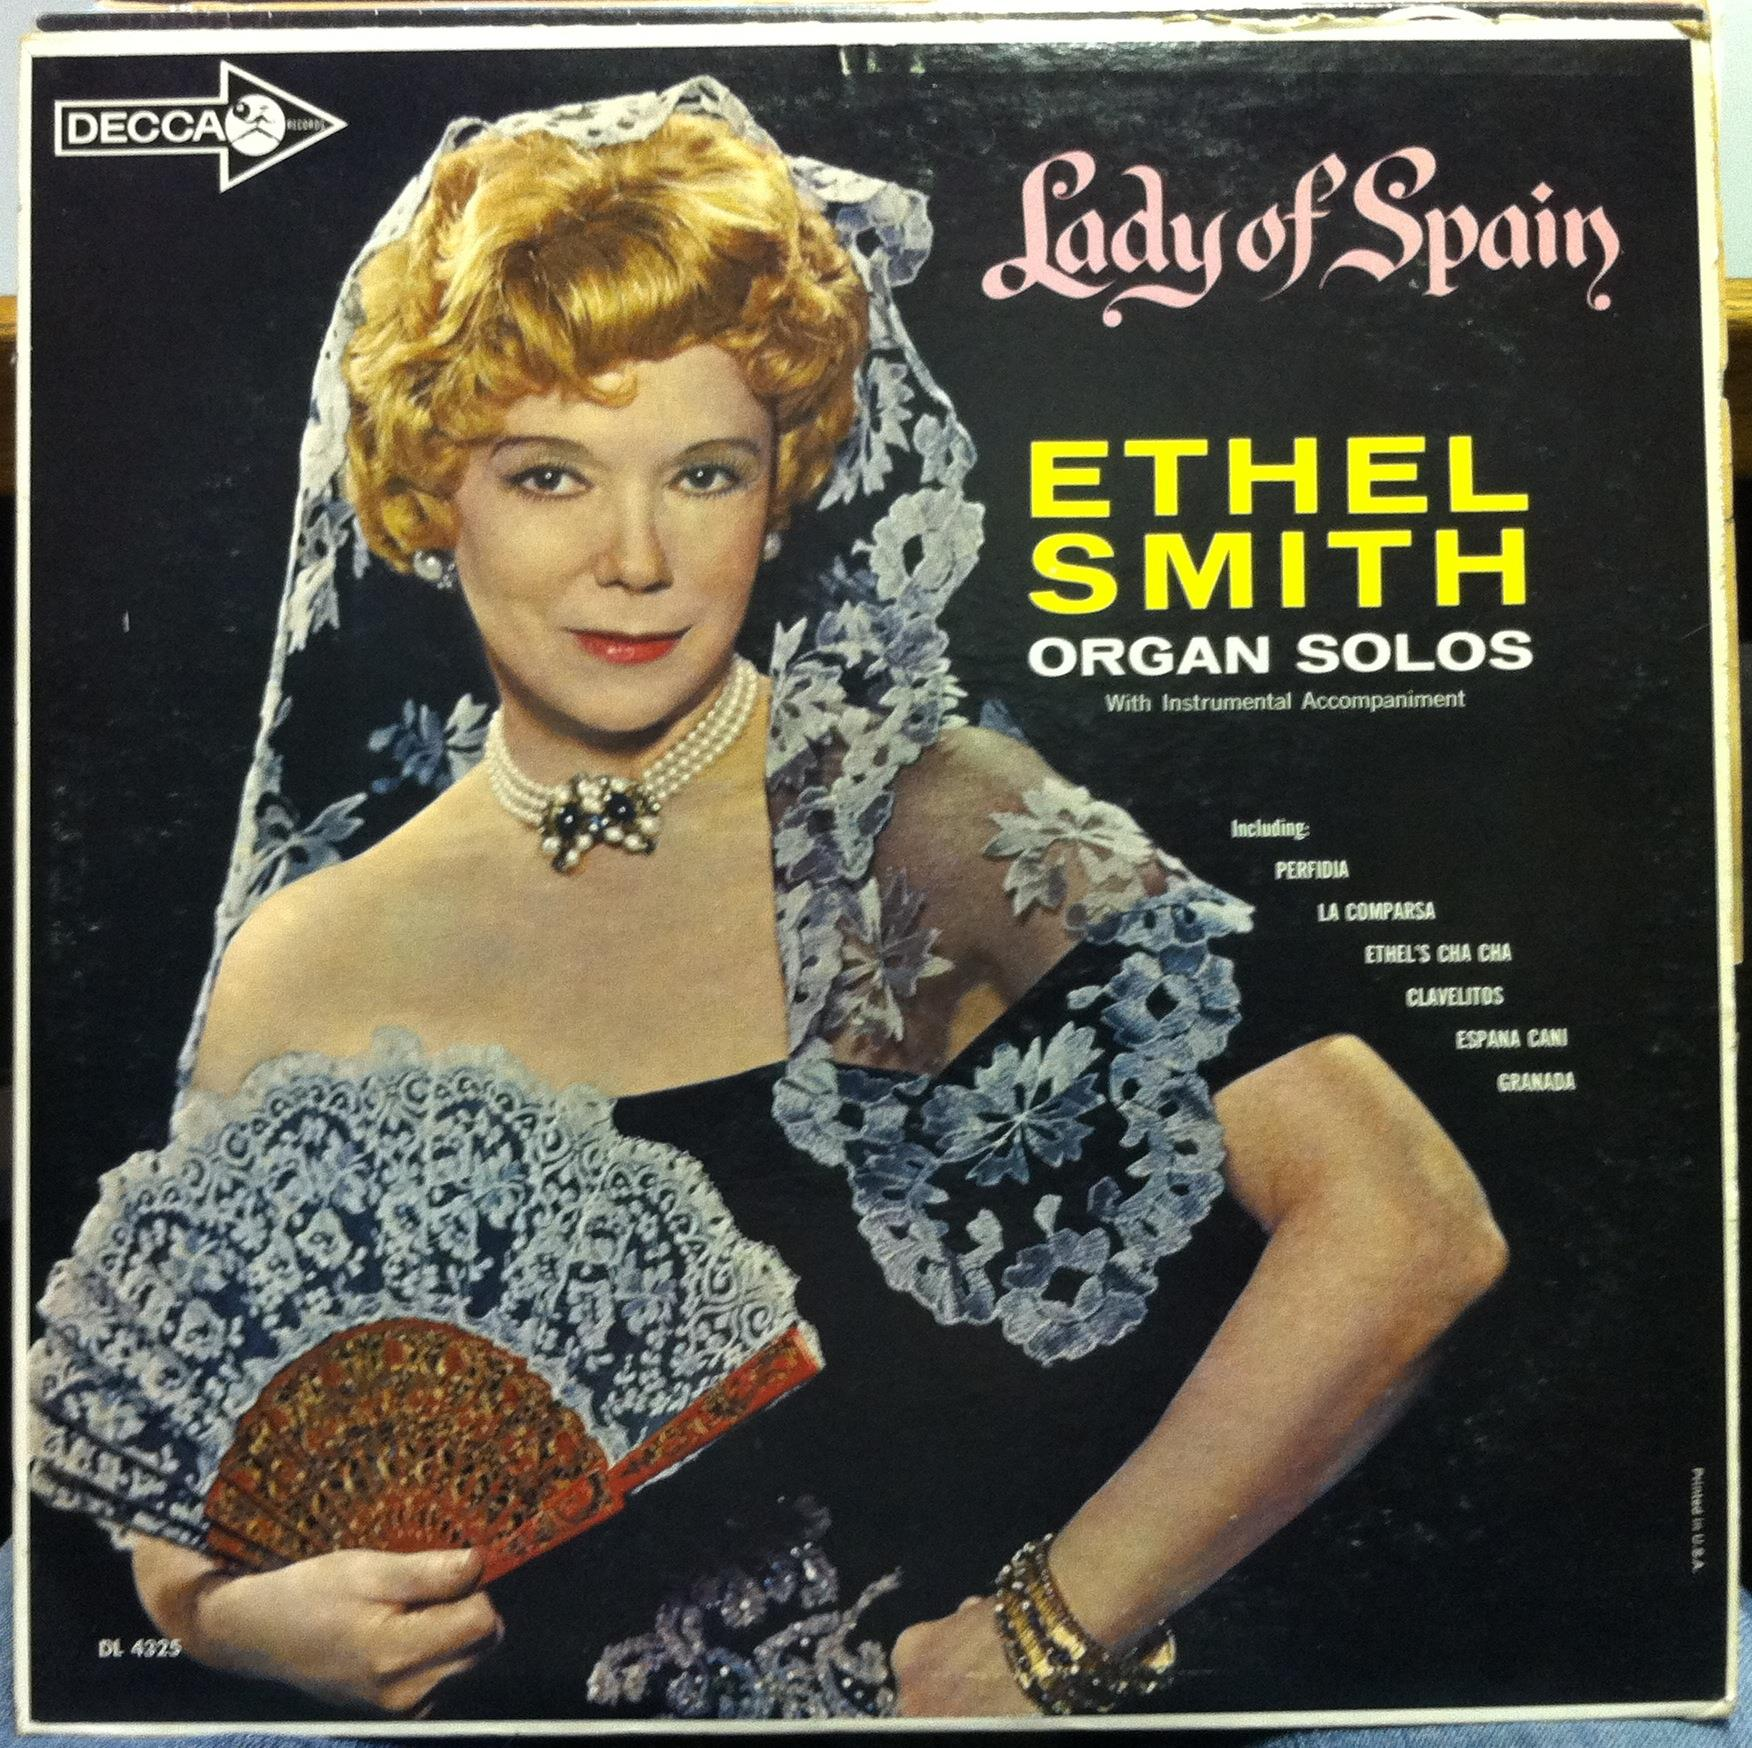 ETHEL SMITH - Ethel Smith Lady Of Spain Lp Vg+ Dl 4325 Vinyl Record (lady Of Spain)